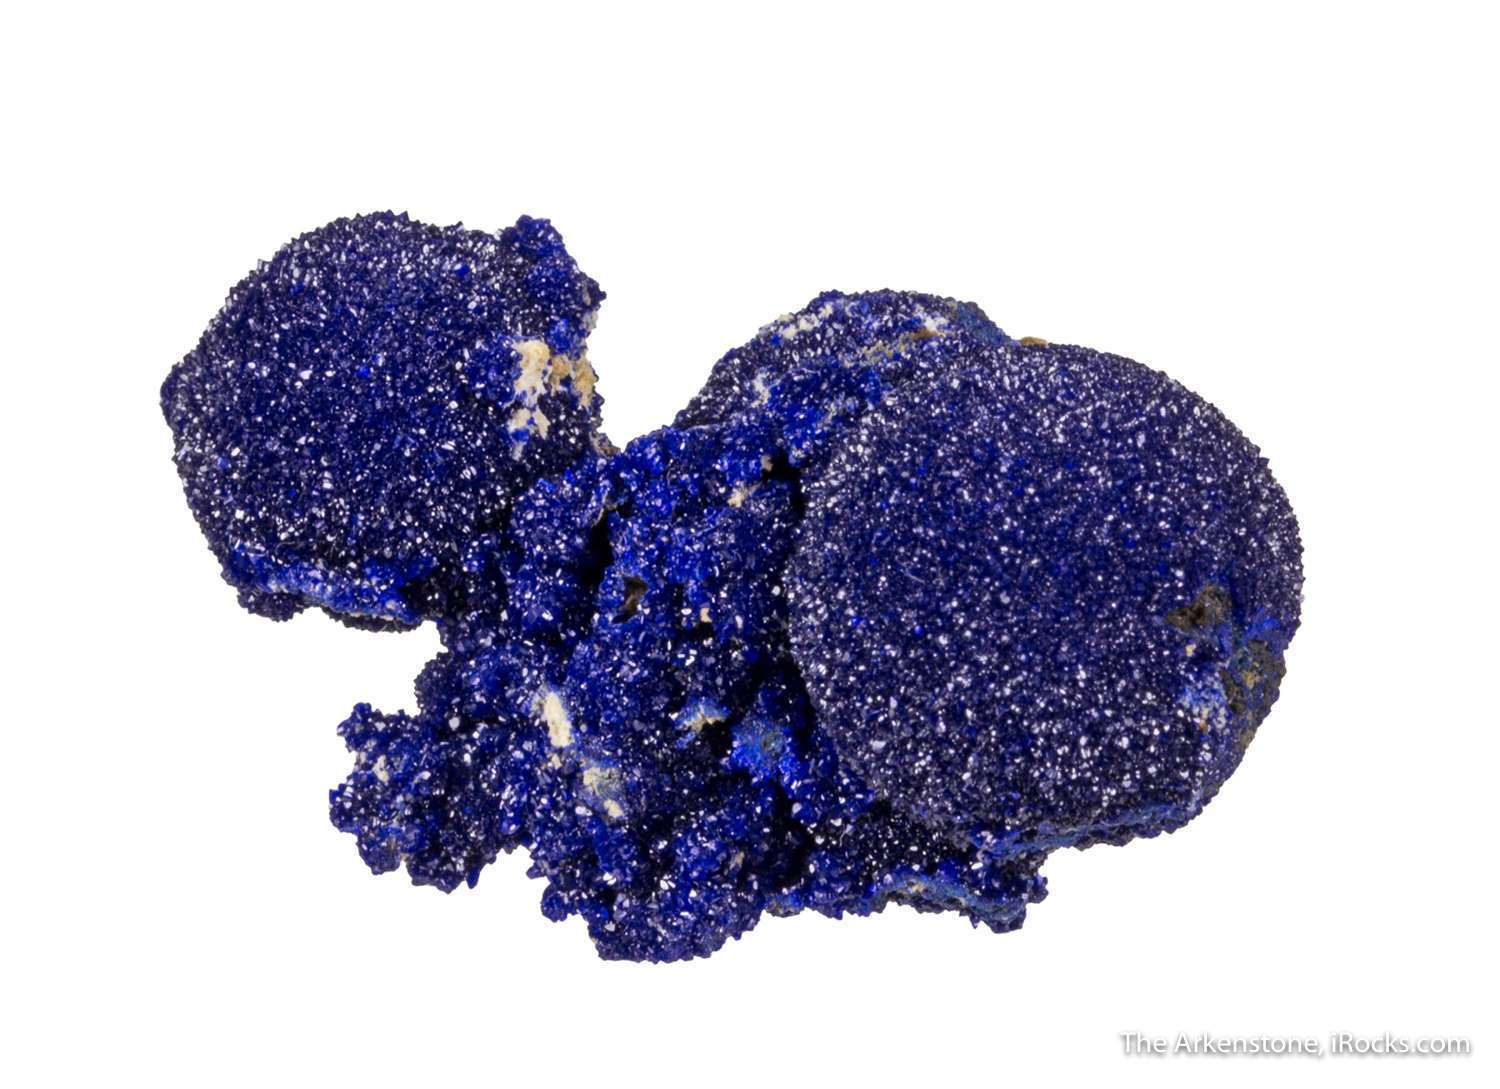 Three intergrown spheres scintillating royal blue azurite 1 3 cm